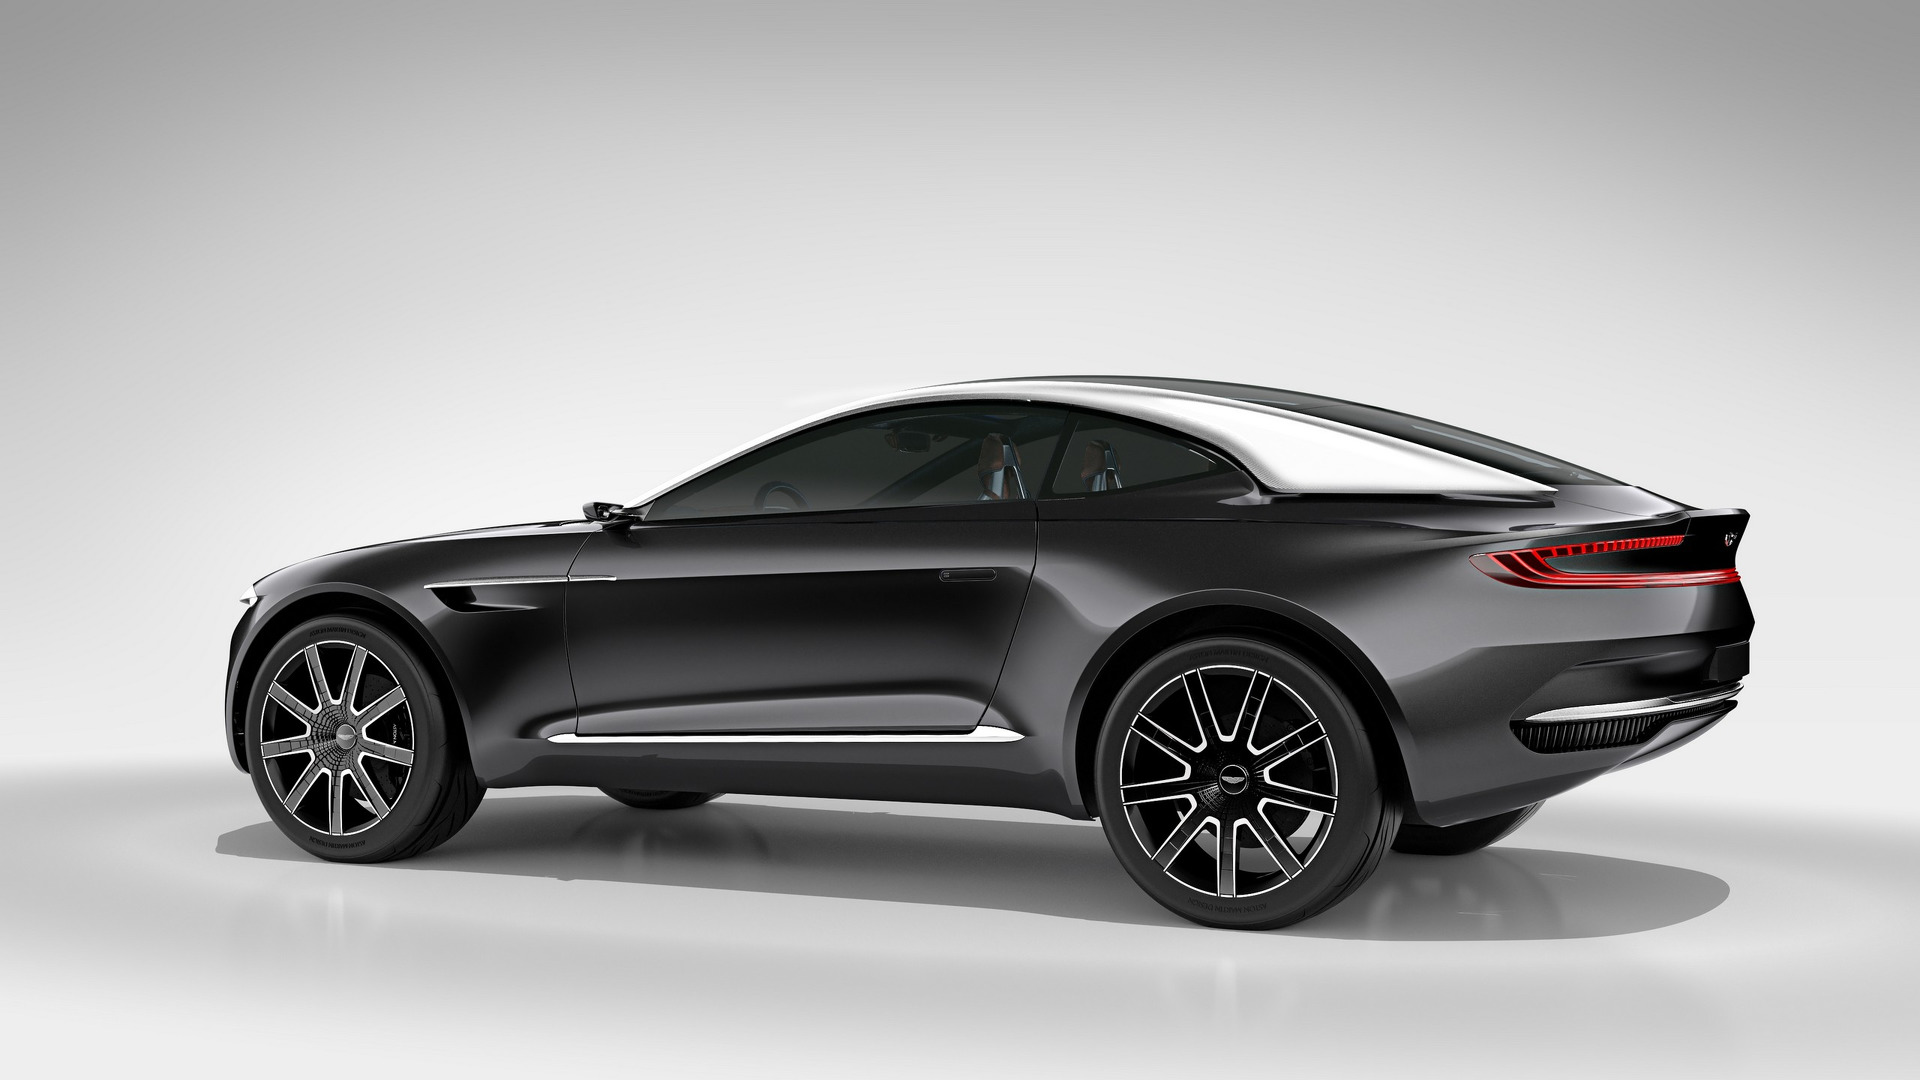 2020 Aston Martin DBX: Design, Powertrains, Arrival >> Aston Martin S Upcoming Dbx Crossover Could Pack A Potent V12